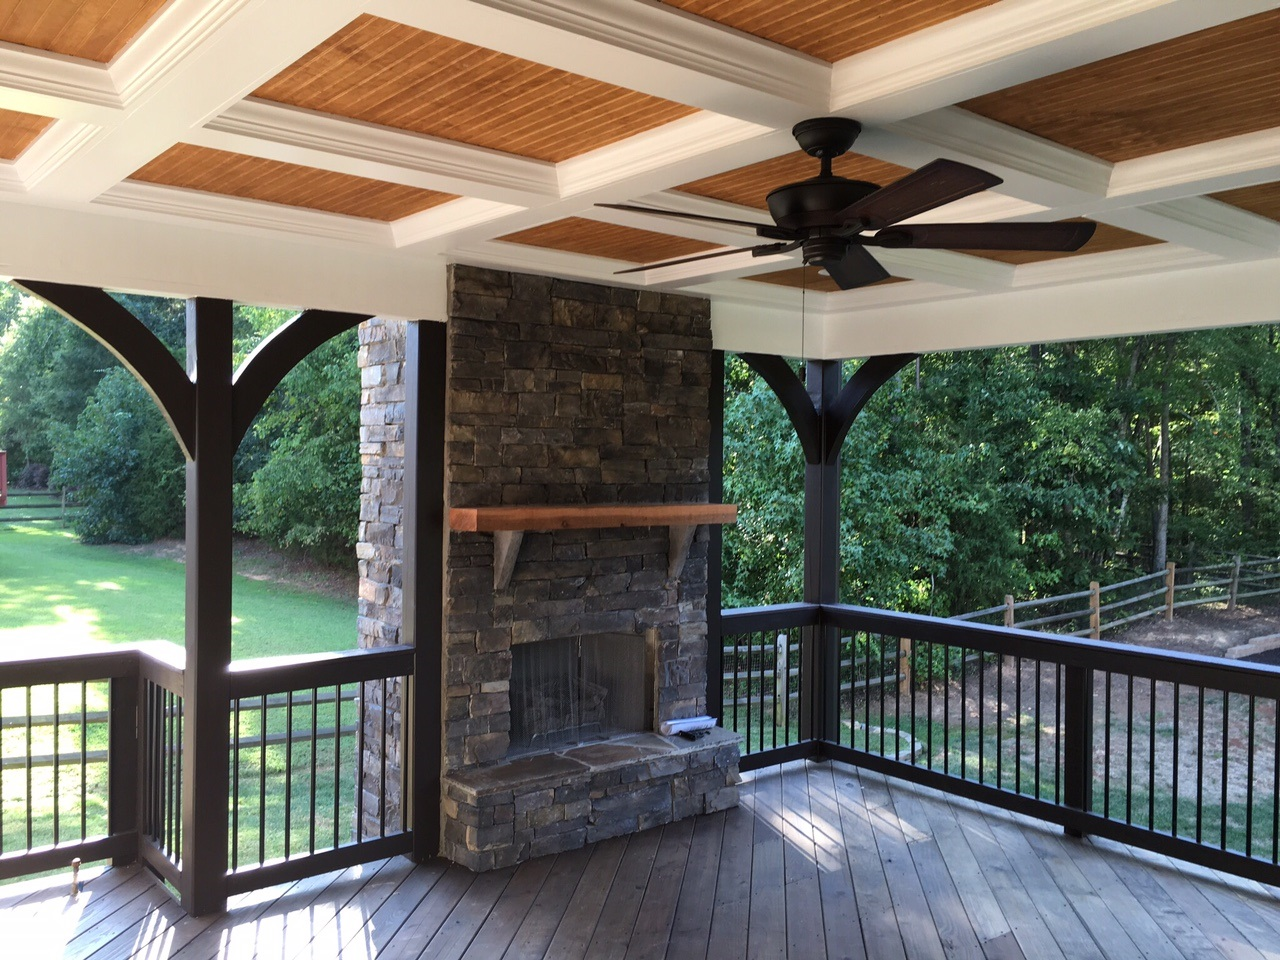 Does Archadeck of Charlotte Service Areas Near Me? on Outdoor Gas Fireplace For Deck id=18471